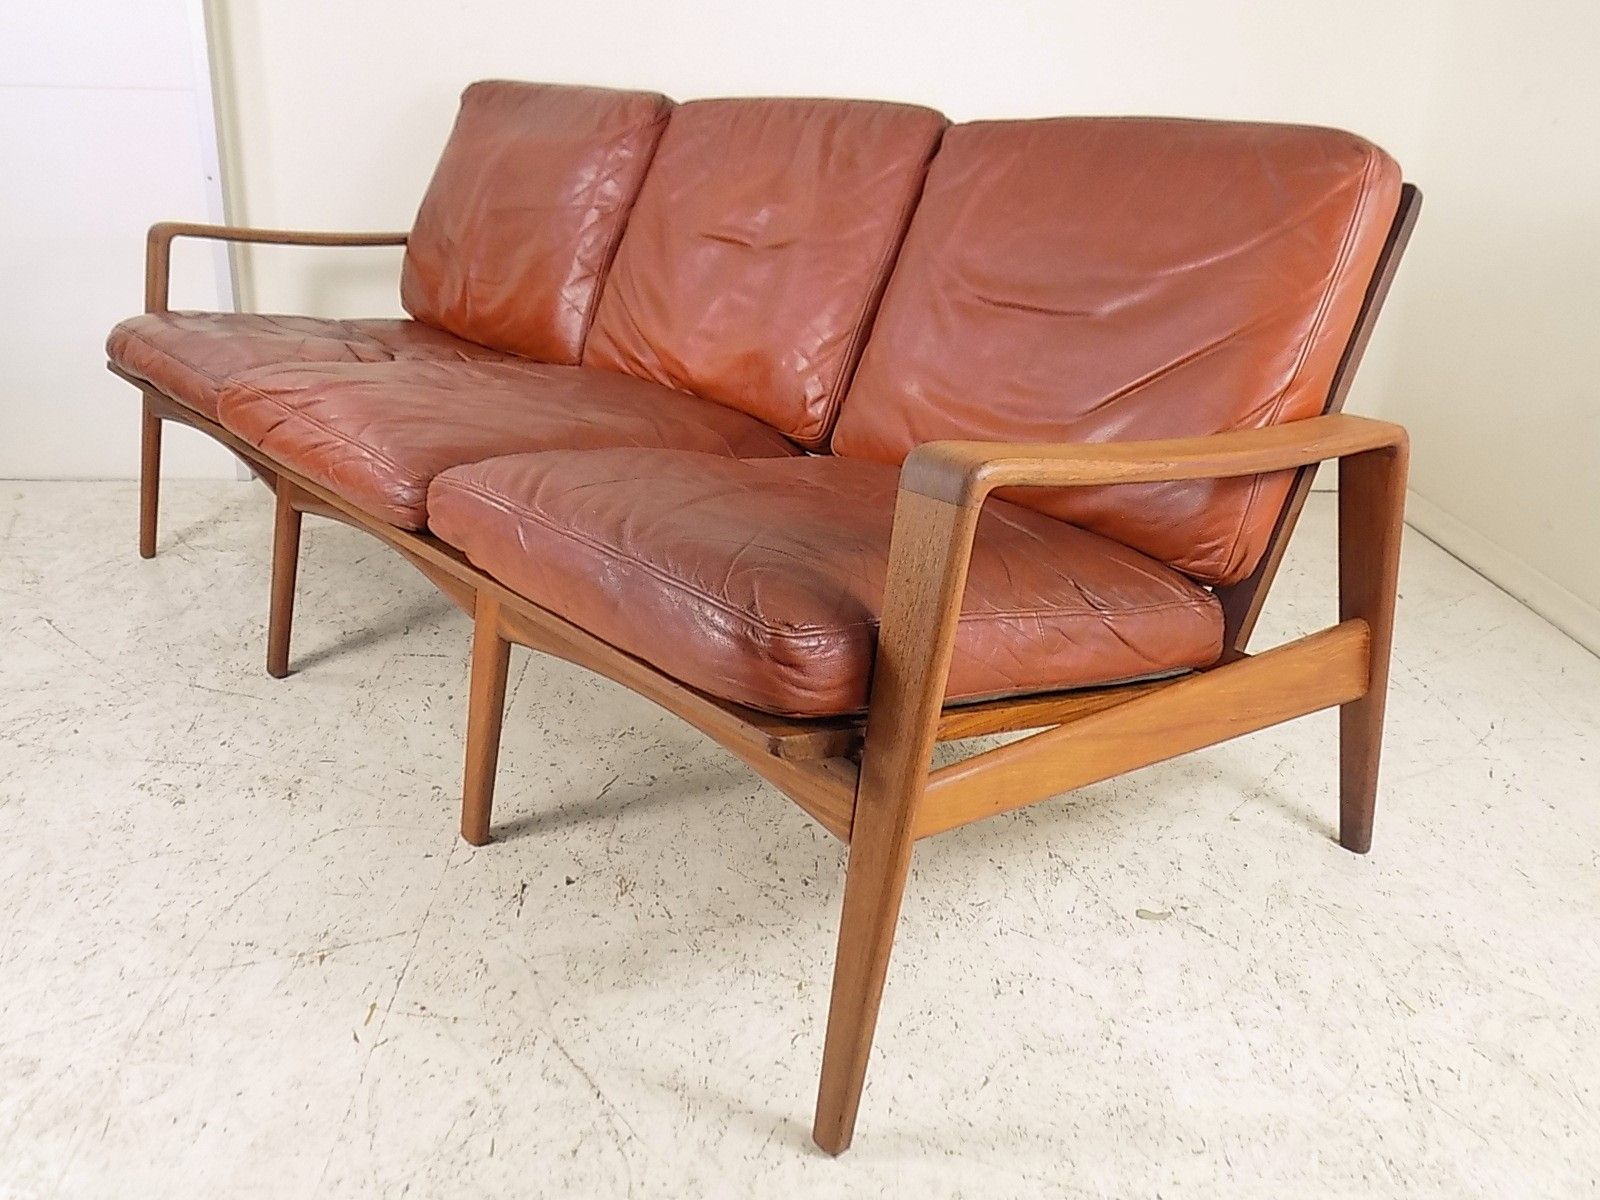 Brown Leather Teak Sofa By Arne Wahl Iversen For Komfort 1960s For Sale At Pamono